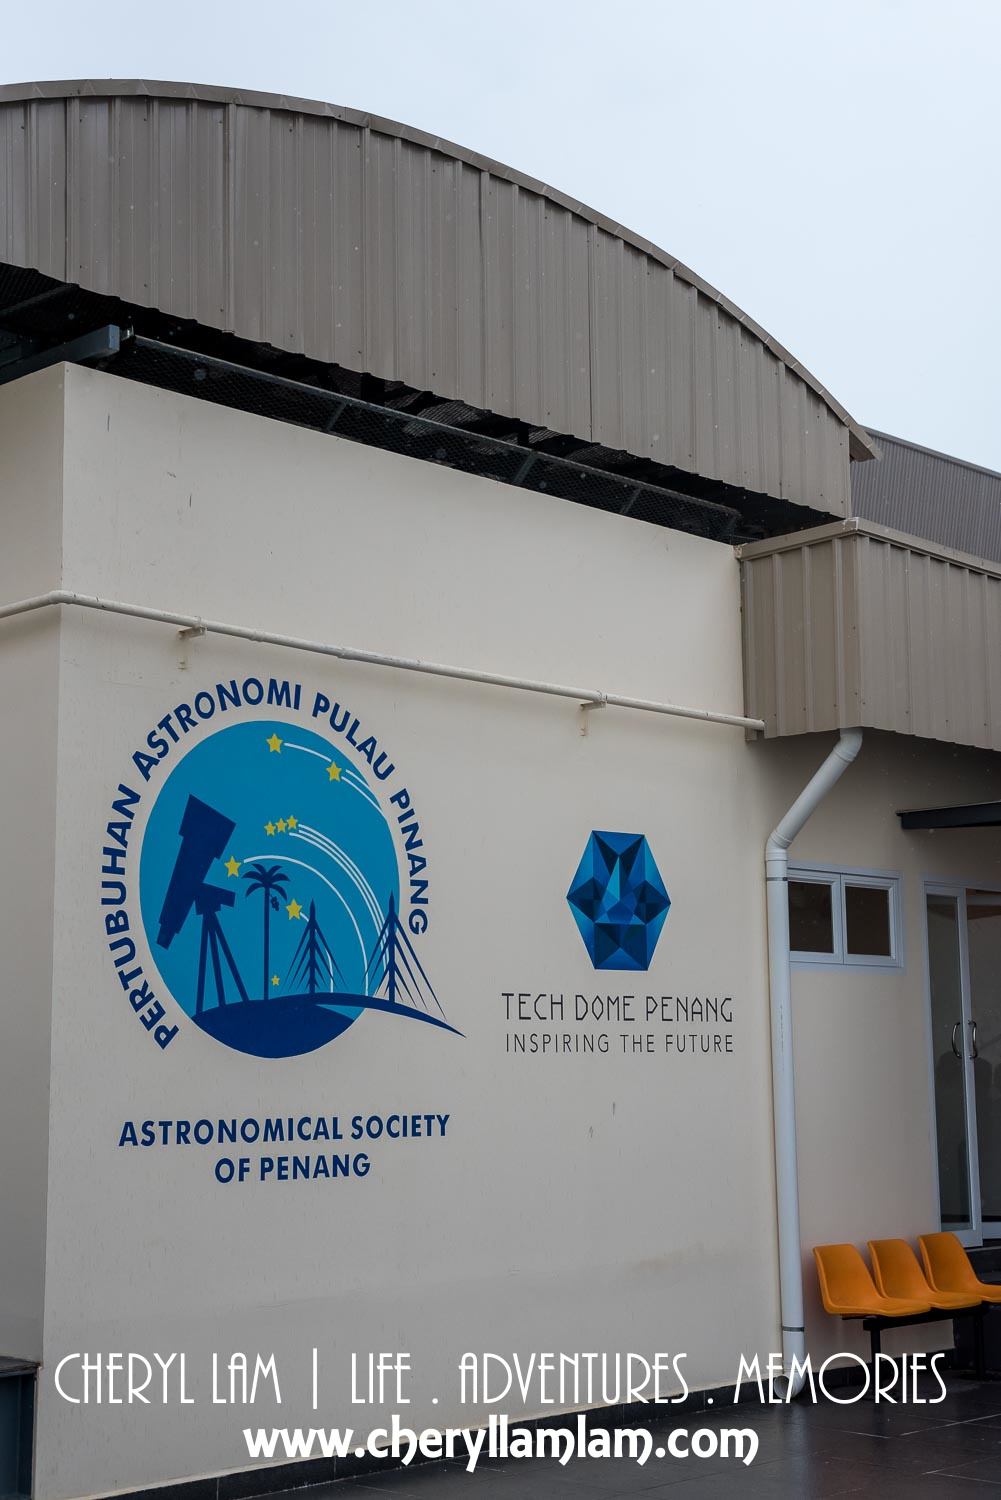 The astronomy area which is expected to be completed very soon, with powerful telescope for visitors to gaze upon celestial wonders or gain a new perspective of those twinkling lights in the night sky.